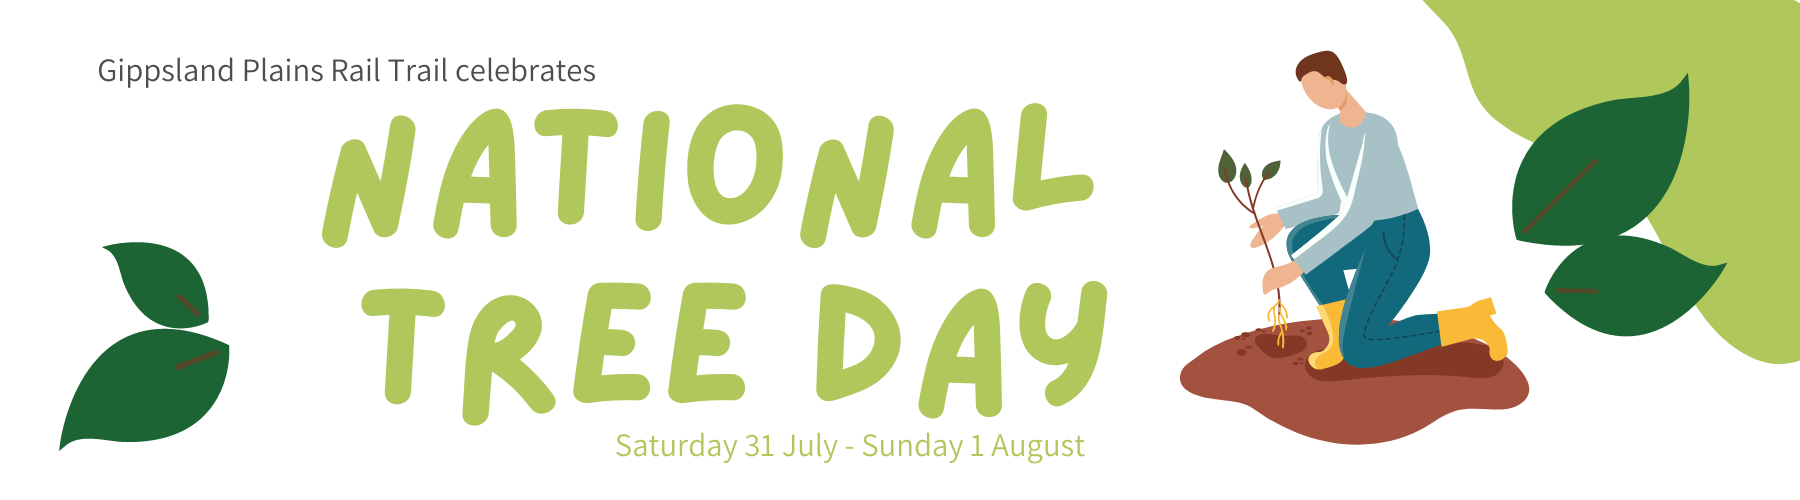 National Tree Day 2021